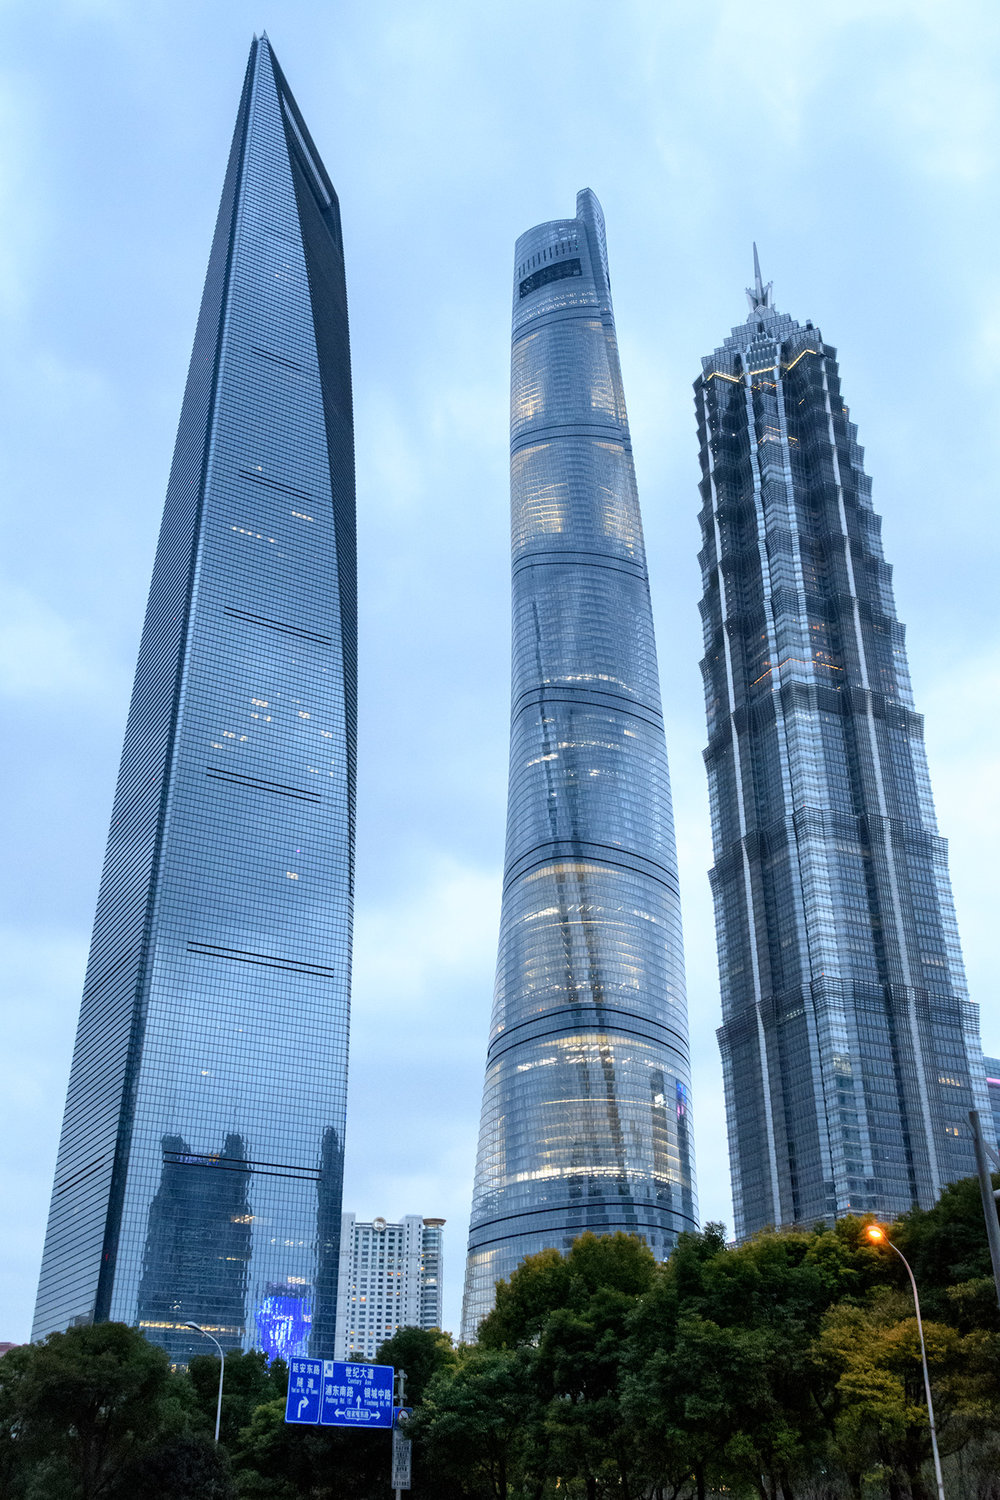 Shanghai World Financial Center, Shanghai Tower (the world's 2nd tallest building) & Jin Mao Tower